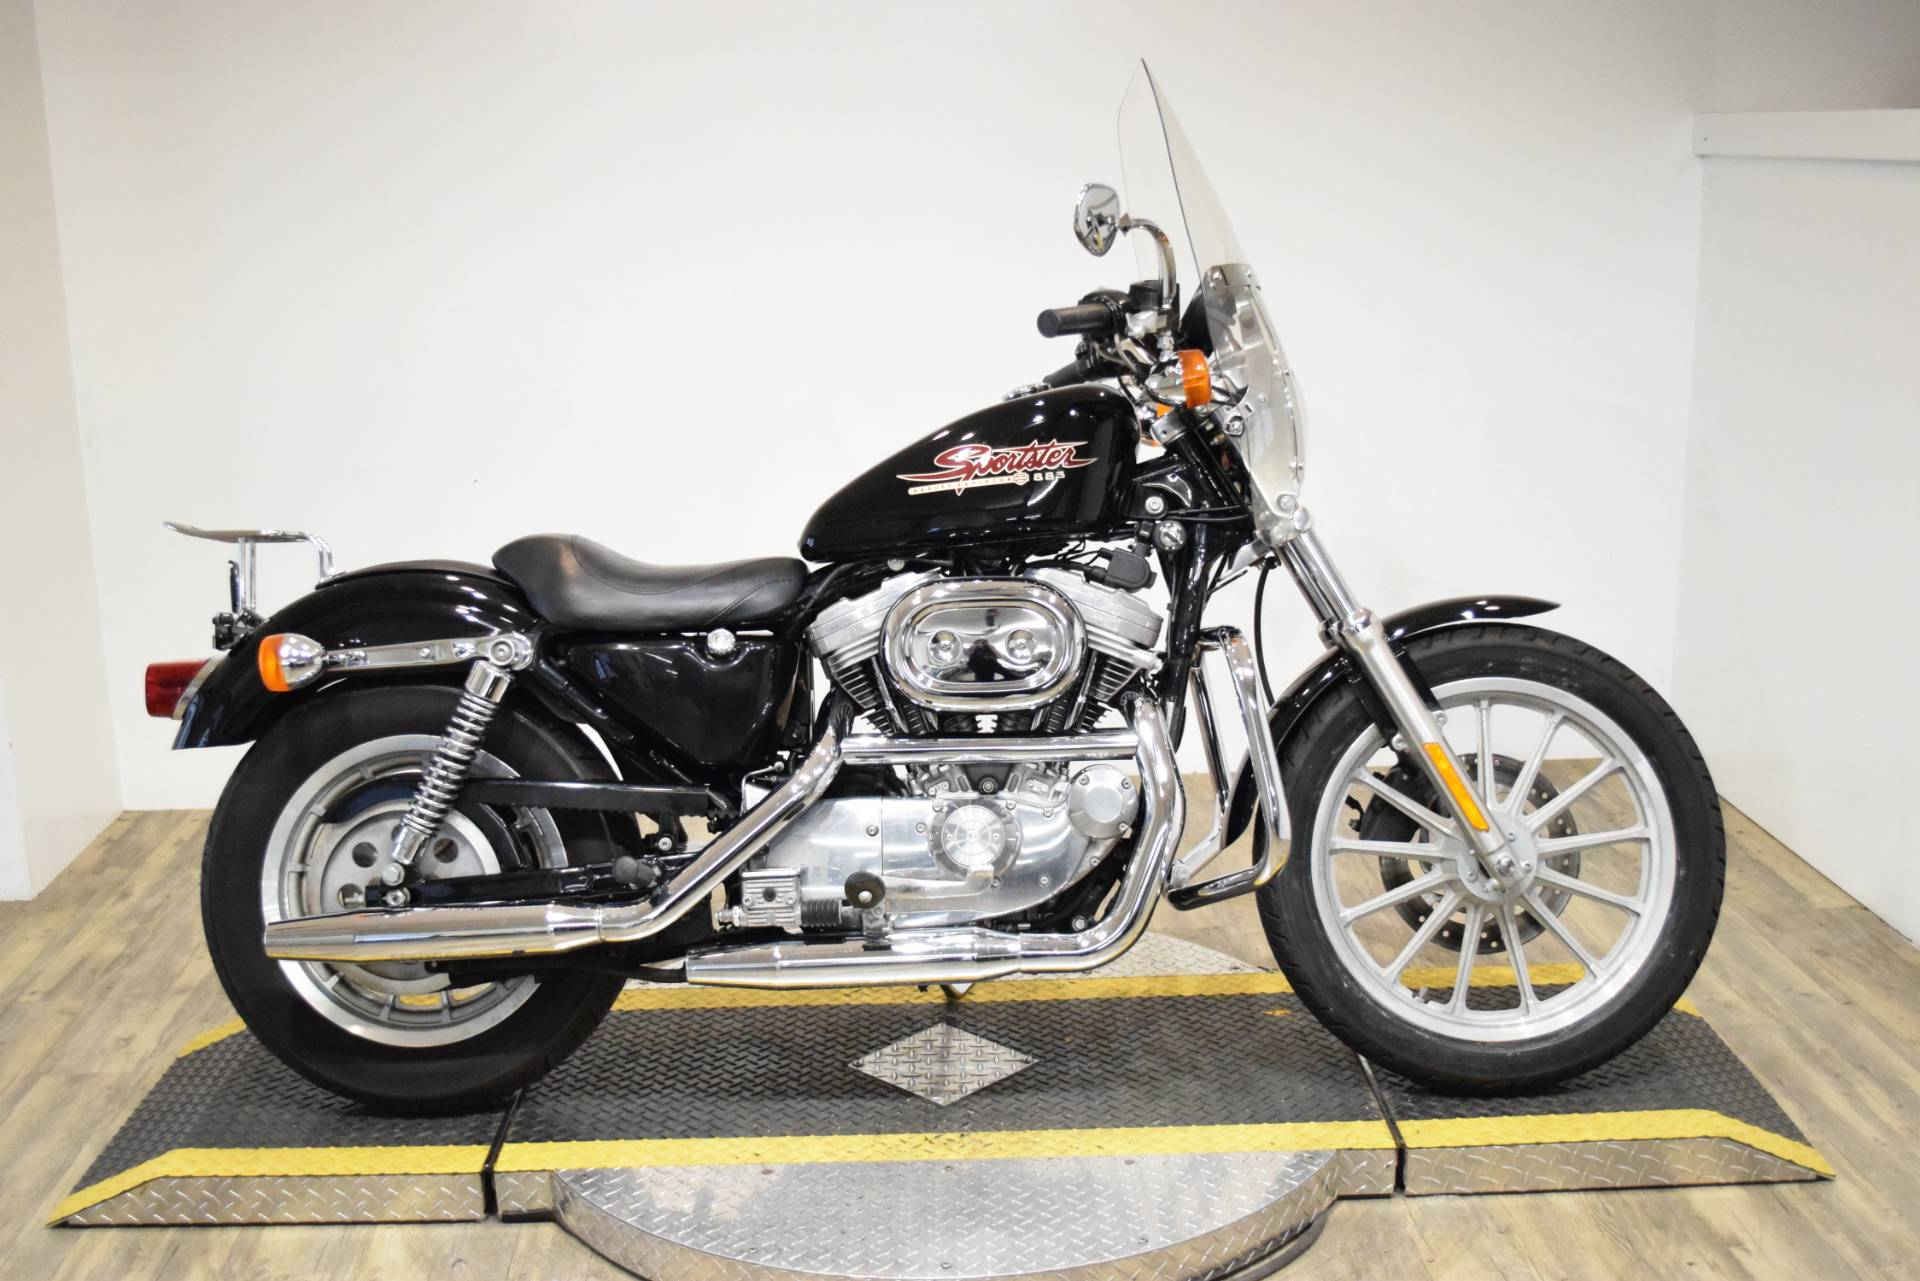 2000 Harley-Davidson XLH Sportster® 883 in Wauconda, Illinois - Photo 1